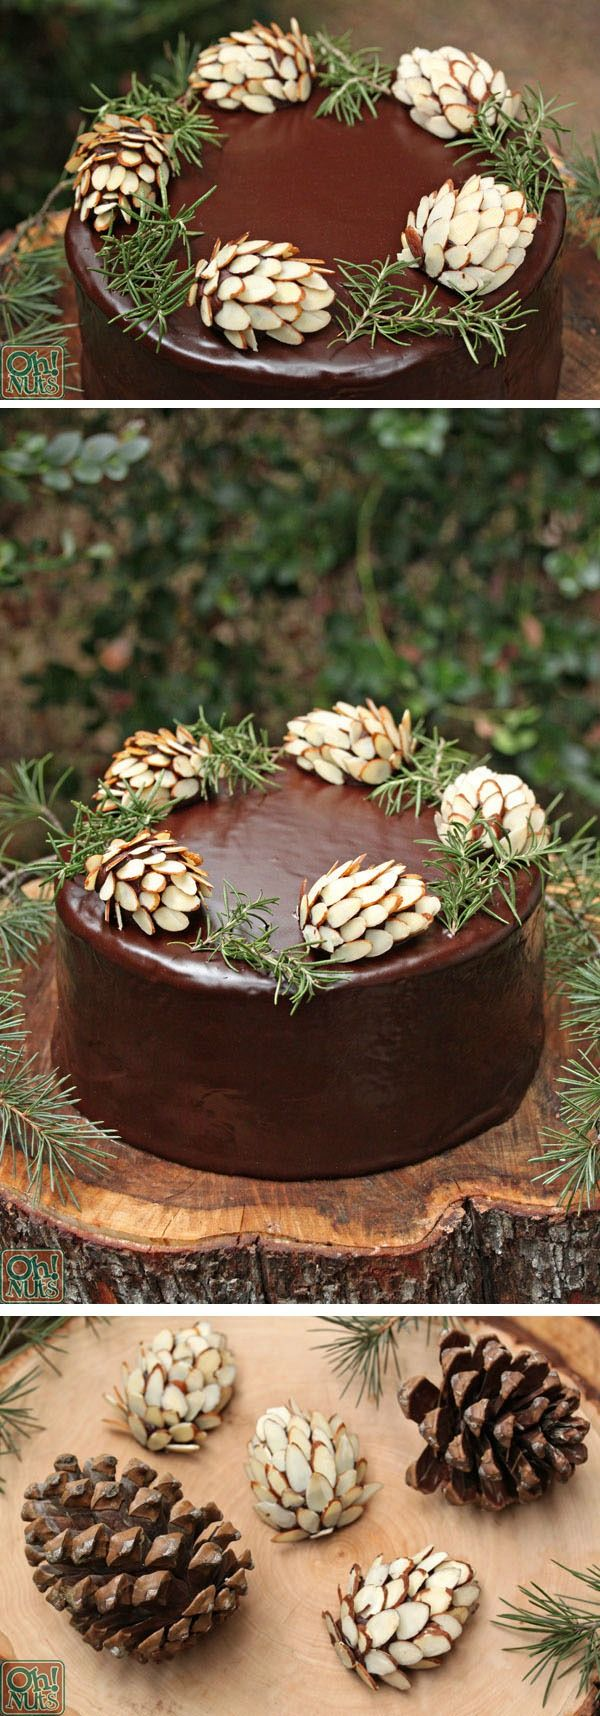 Chocolate Pine Cones made with chocolate fudge and almonds.